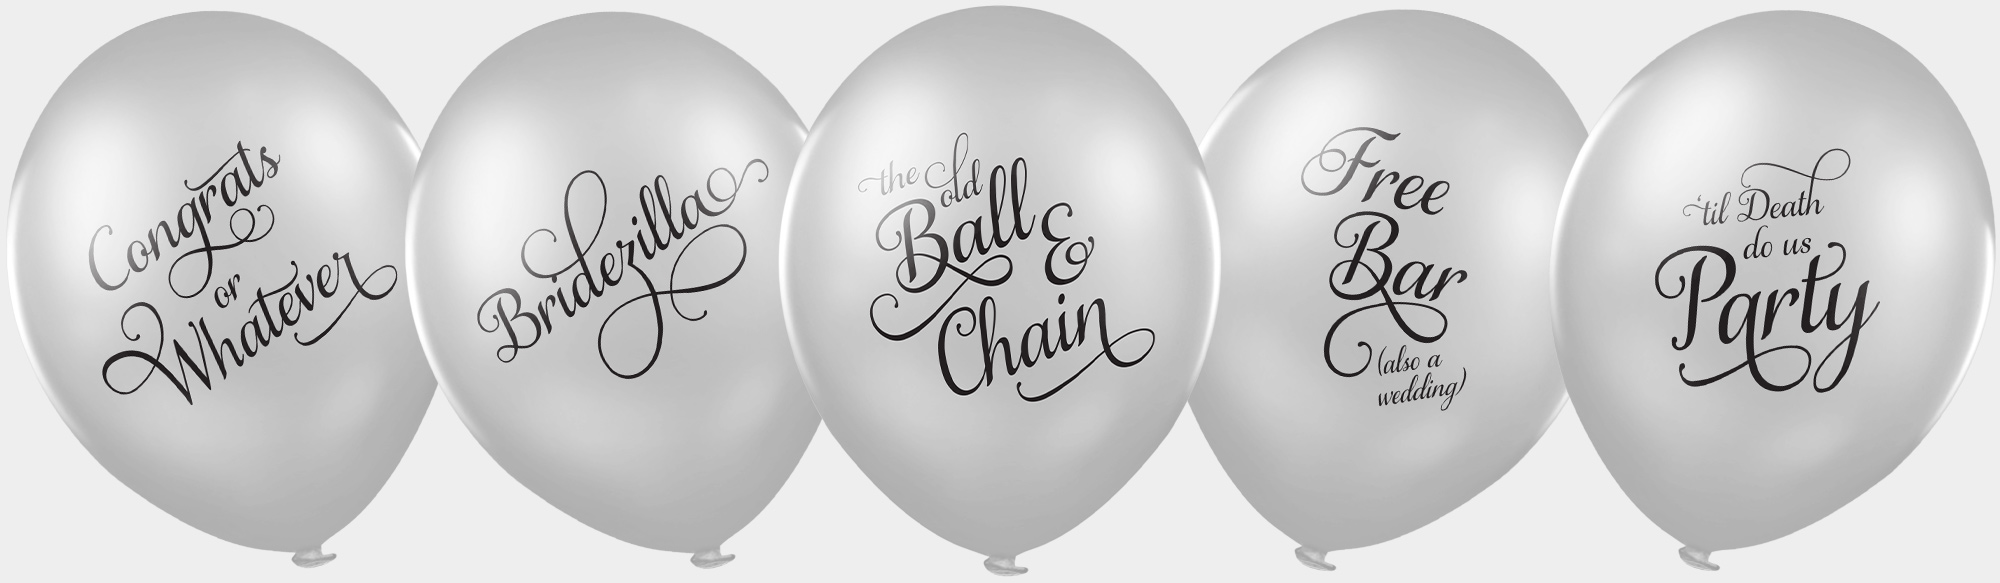 funny wedding balloons bumper pack